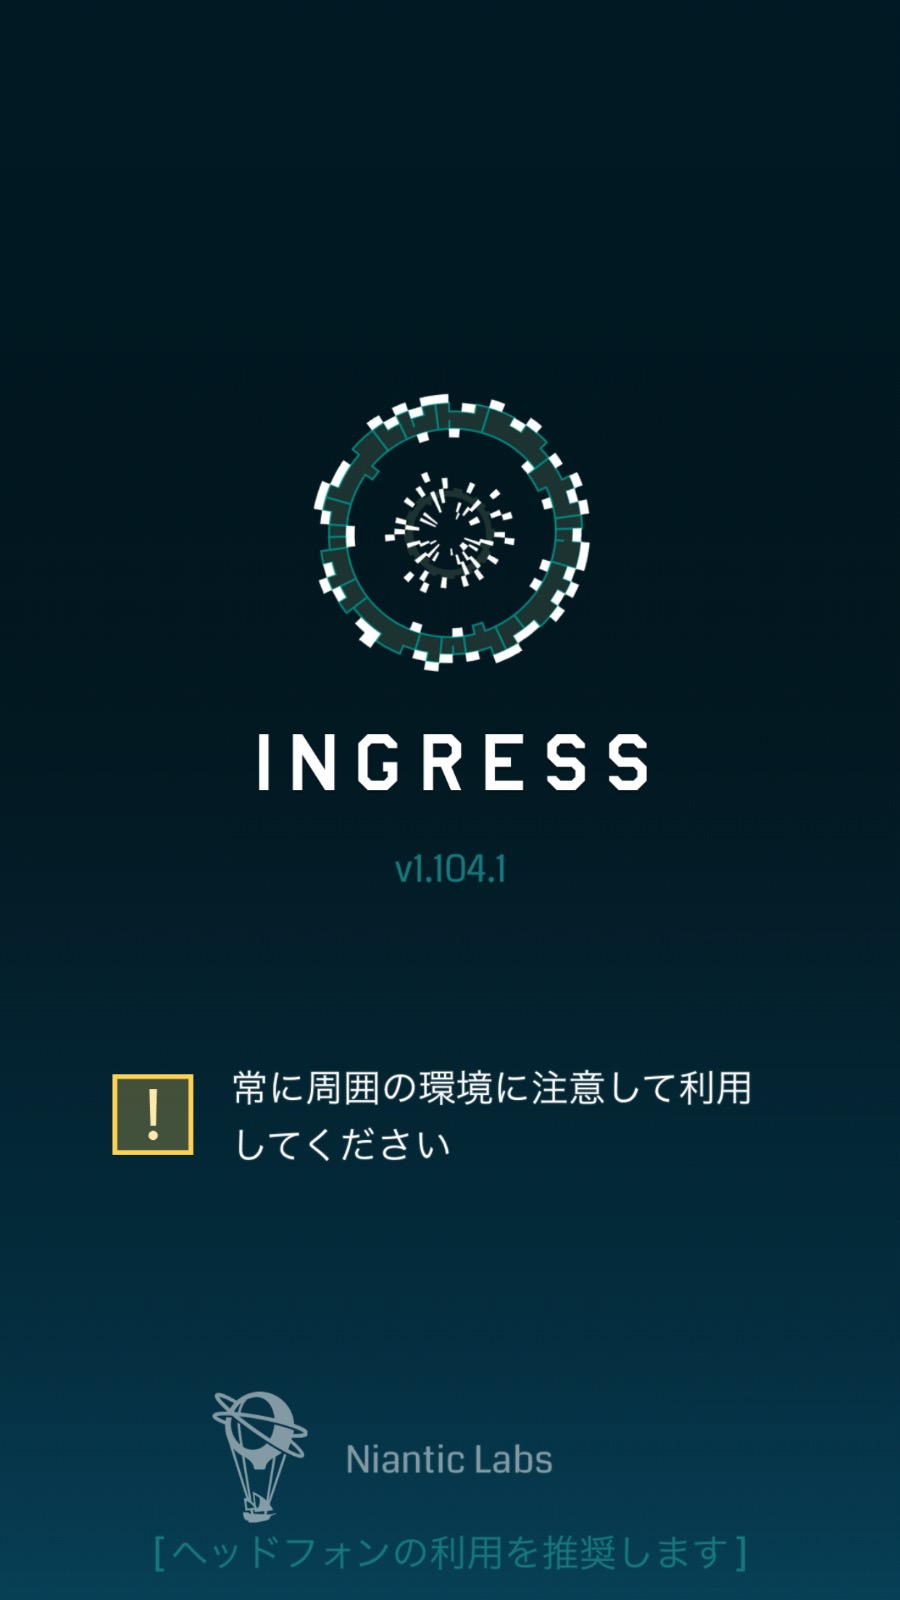 【Ingress】iOS版「Ingress 1.104.1」リリース